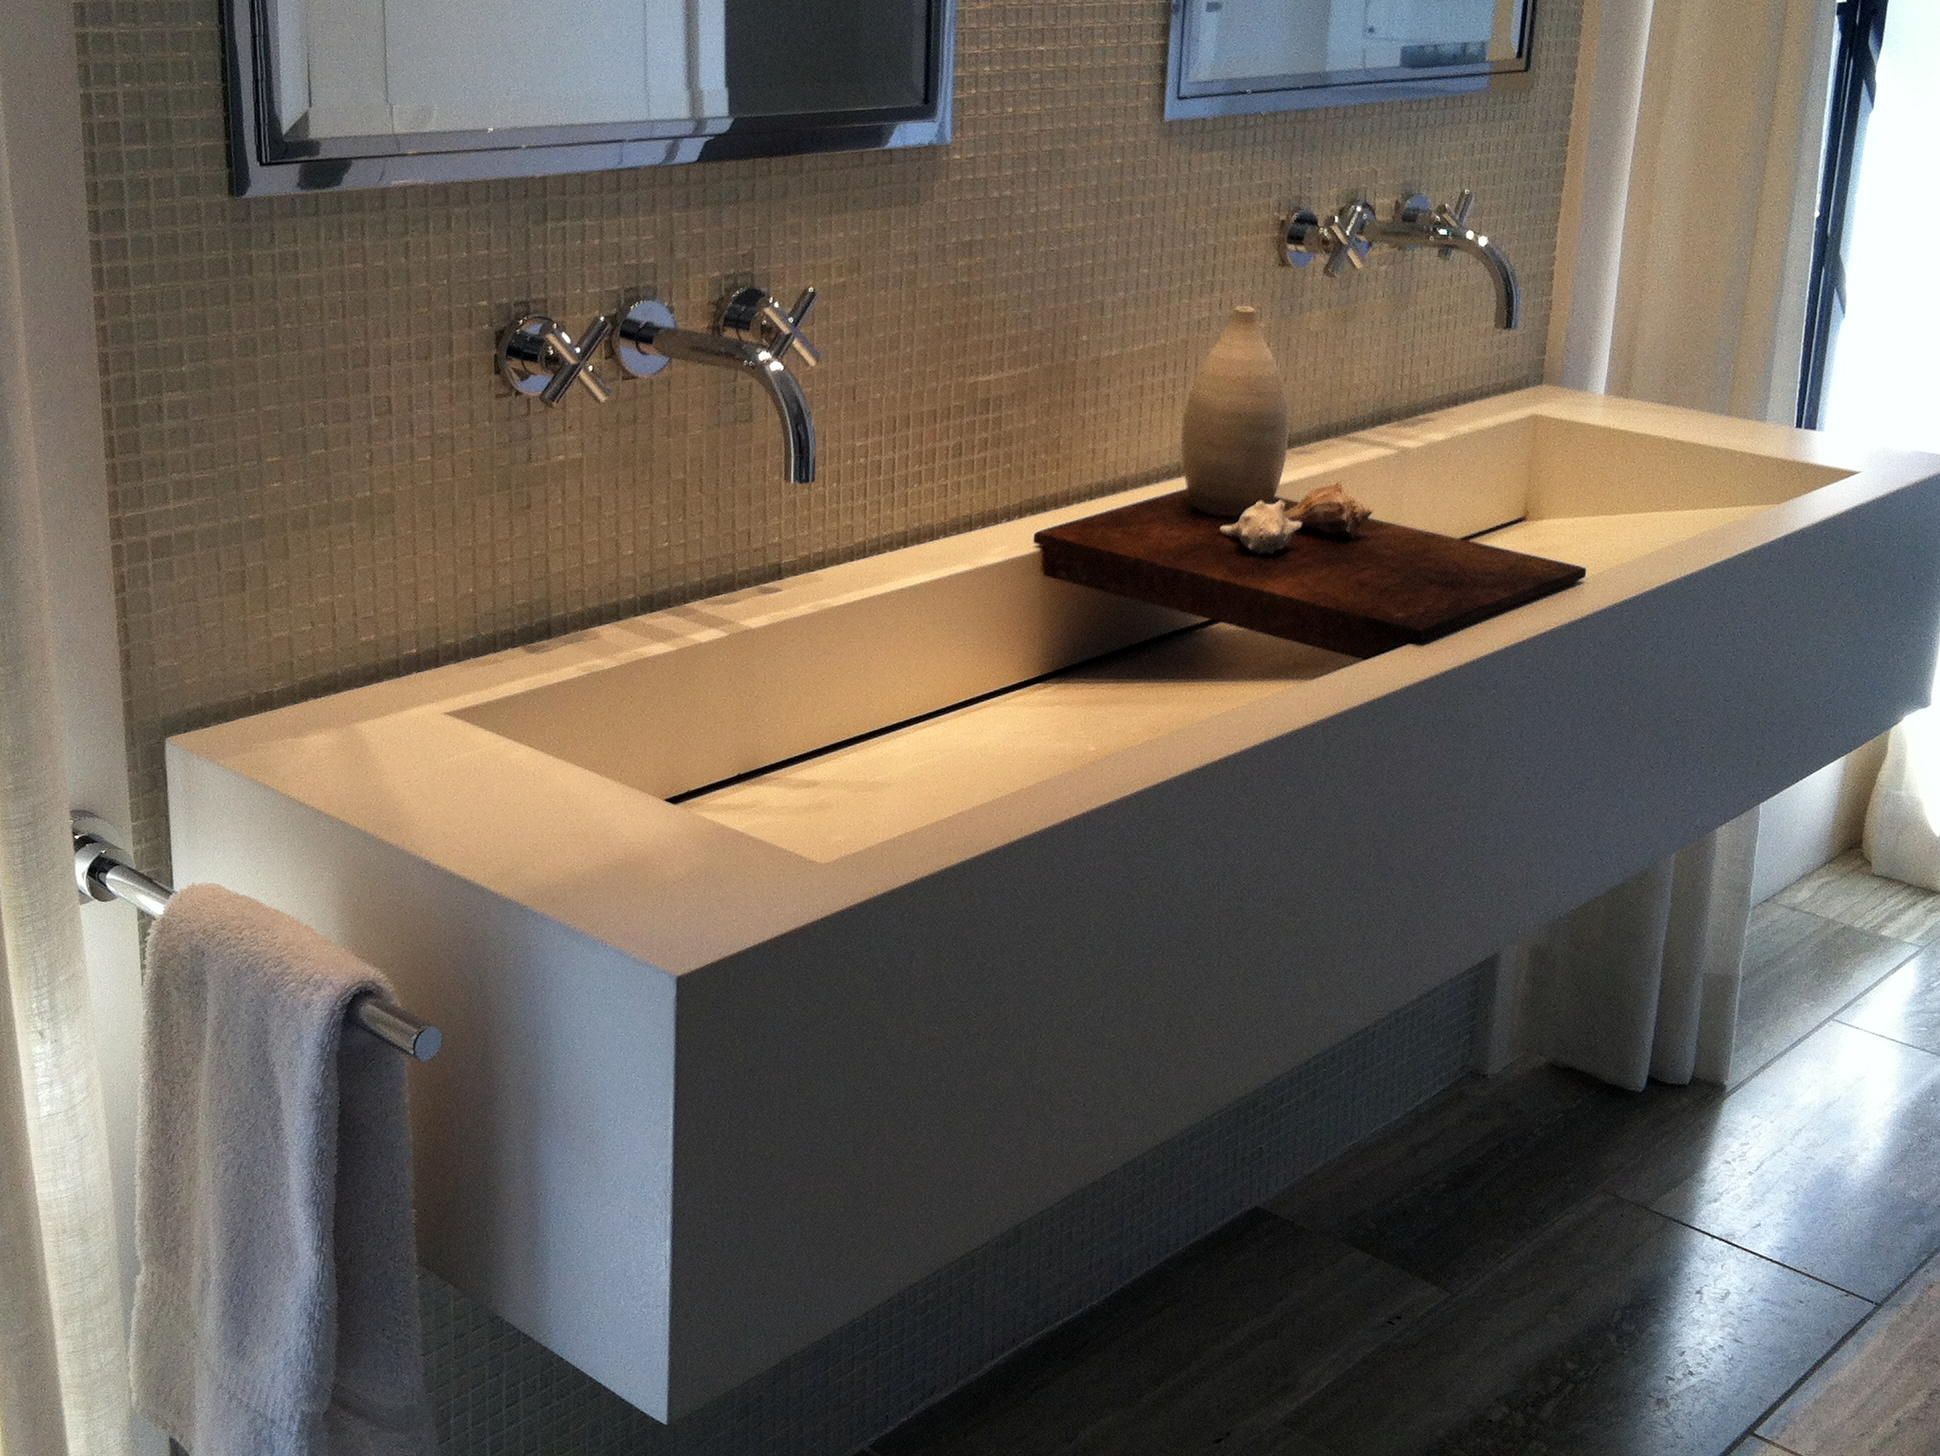 White Trough Bathroom Sink : bathroom trough sinks modern bathroom sink double sink bathroom white ...